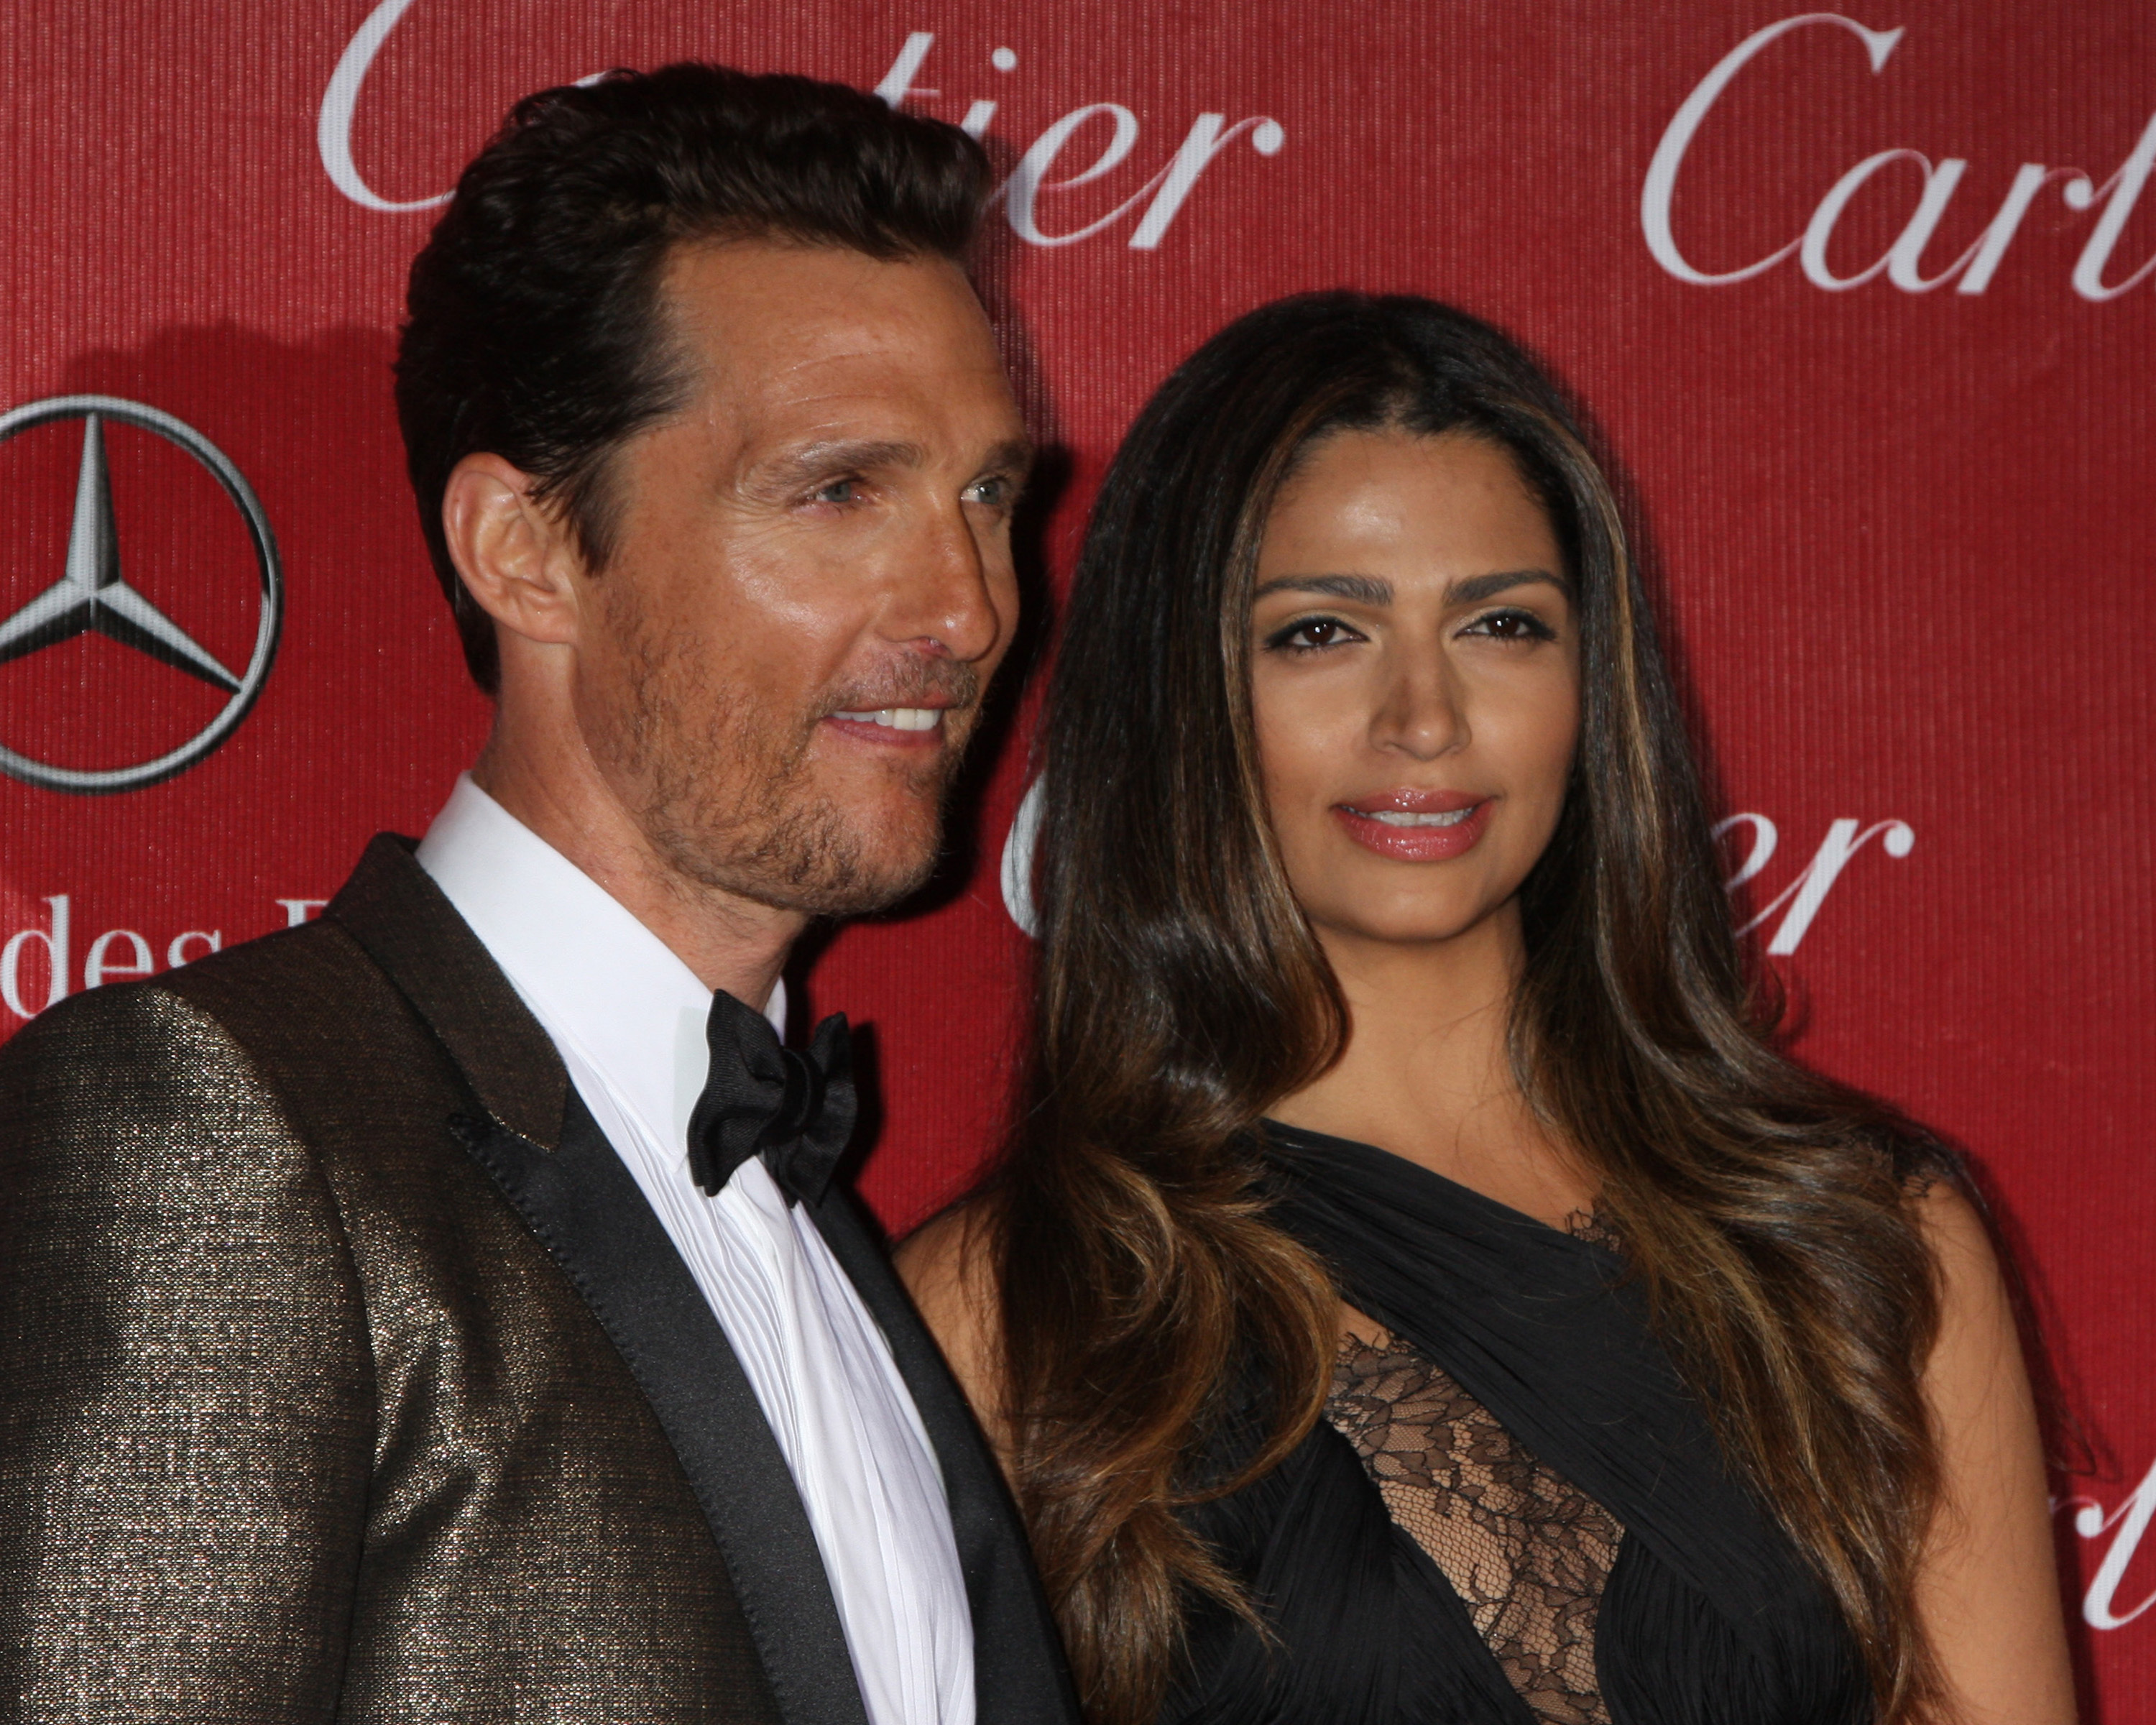 Married couple Matthew McConaughey and Camila Alves relationships with big age difference